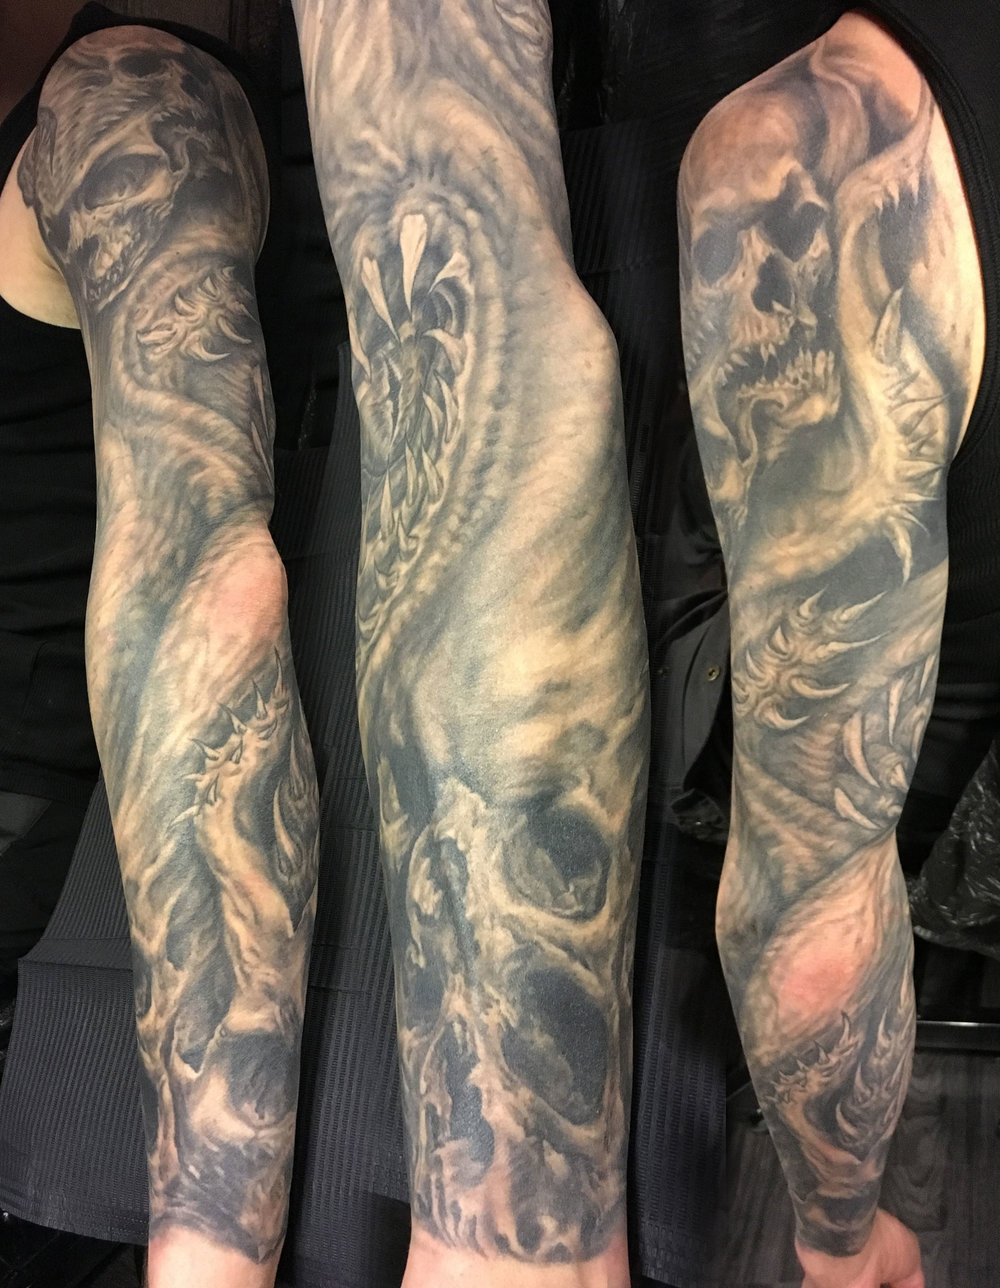 Black and Grey Cthulhu/Skull Sleeve Tattoo,  work in progress